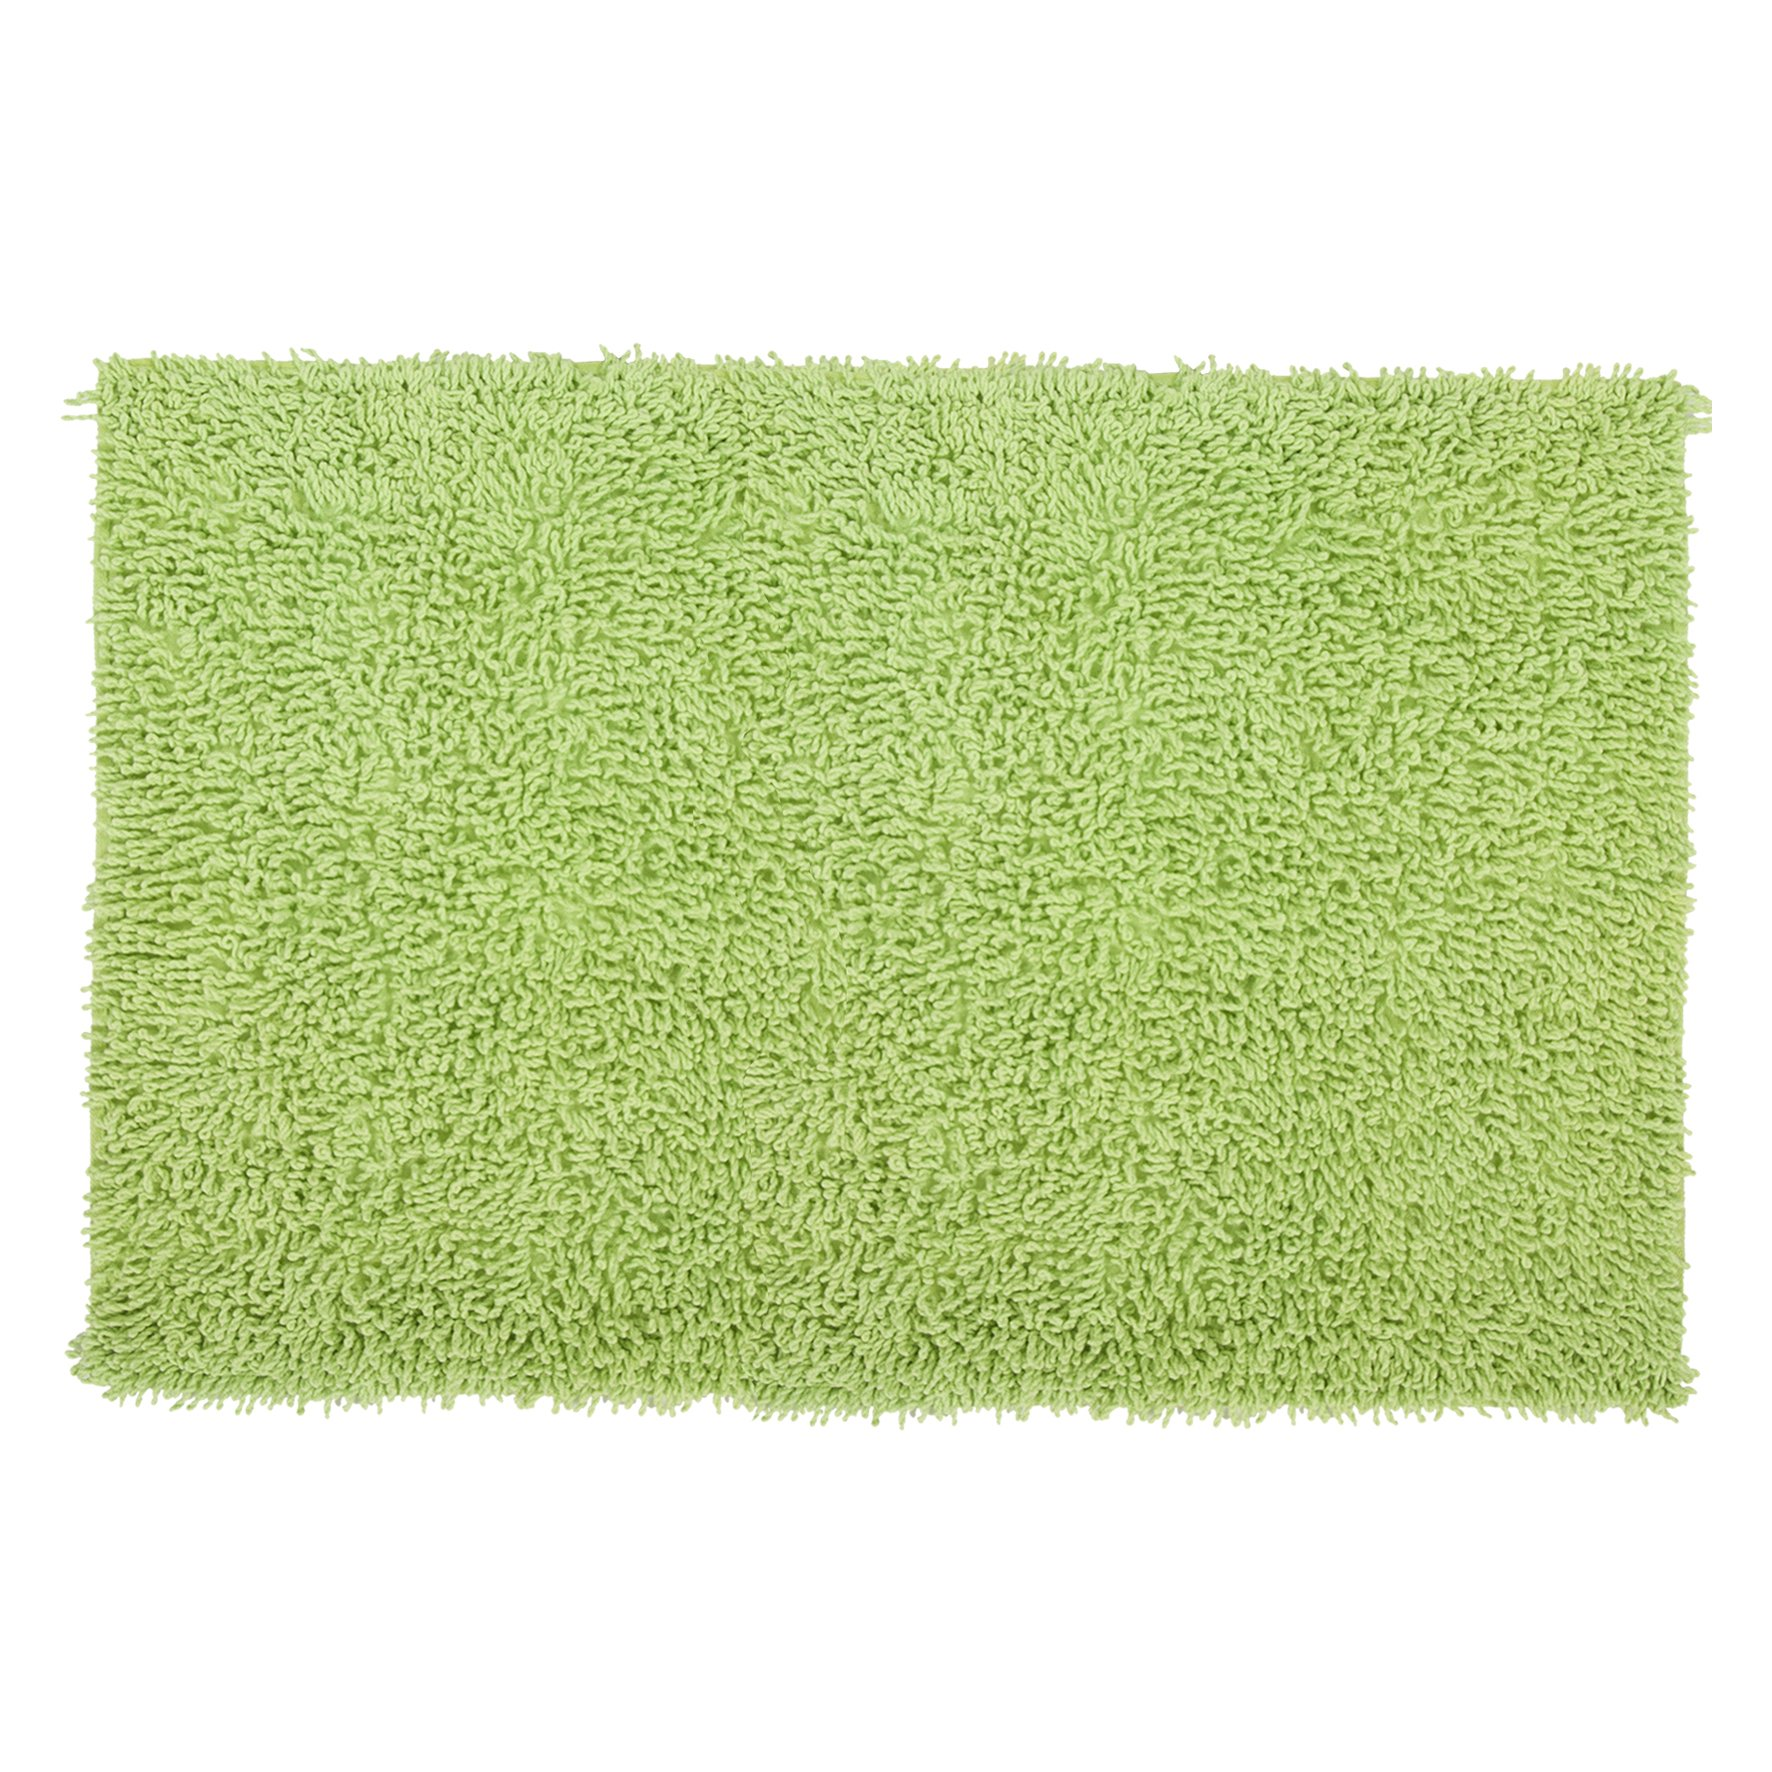 DIFFERNZ 31.102.23 Essence Bath Mat, Lime Green/Matching Colour by Differnz